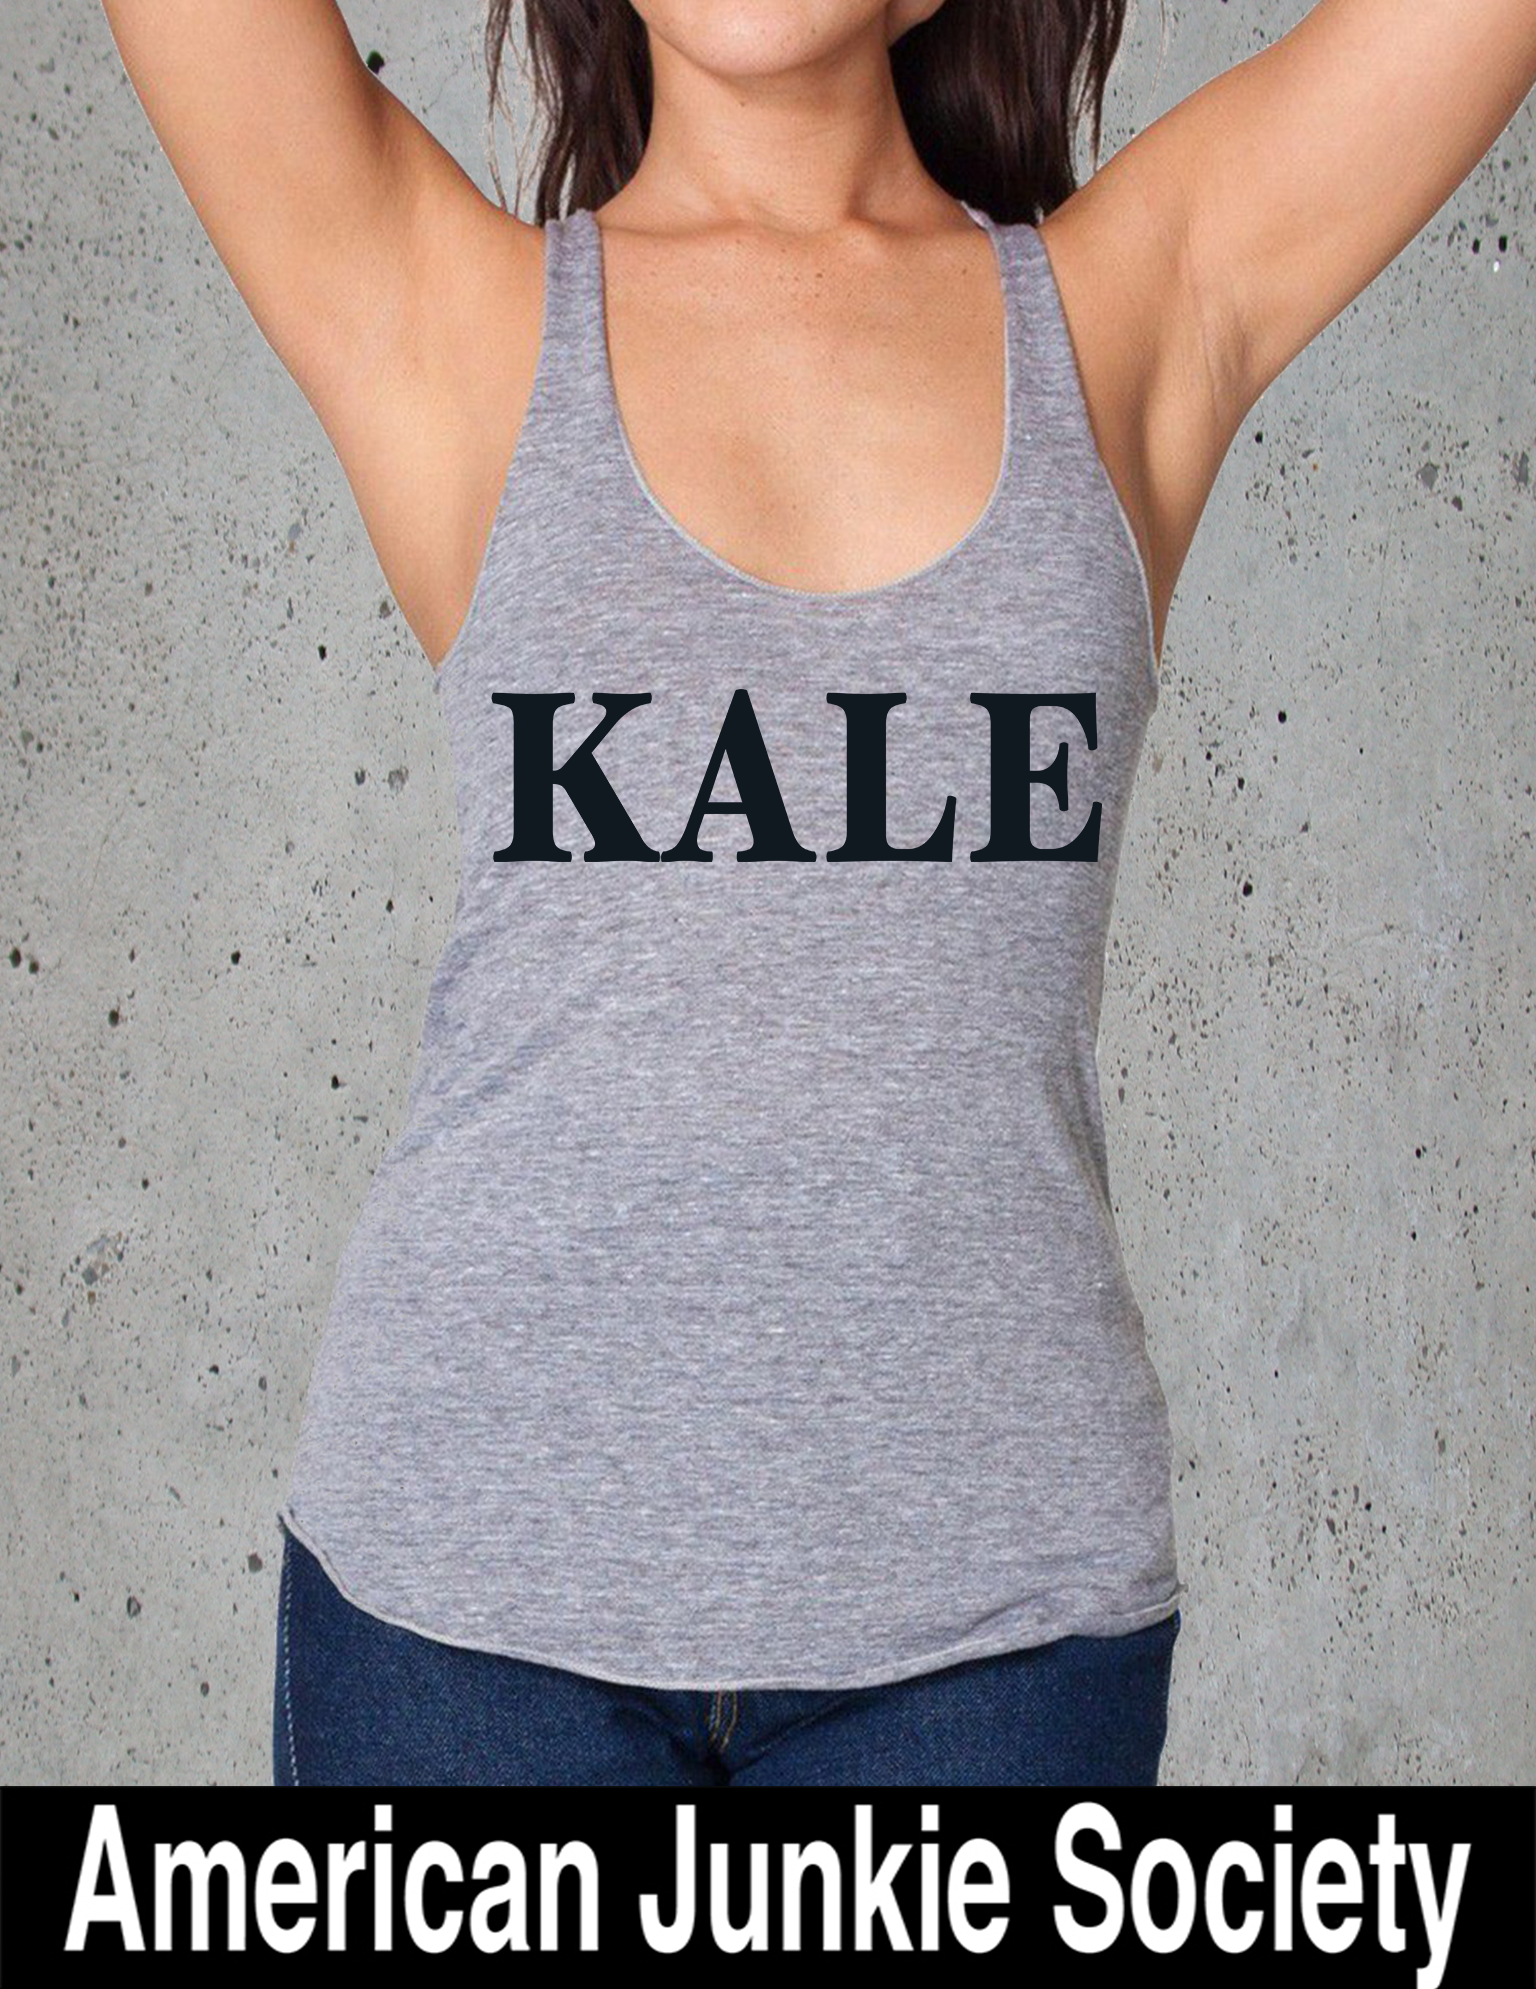 KALE tank Christmas Gifts Idea for her/him. College Student Gift. Girlfriend/Boyfriend GIfts.Mens/Womens Graphic Tees  Popular Trending Now